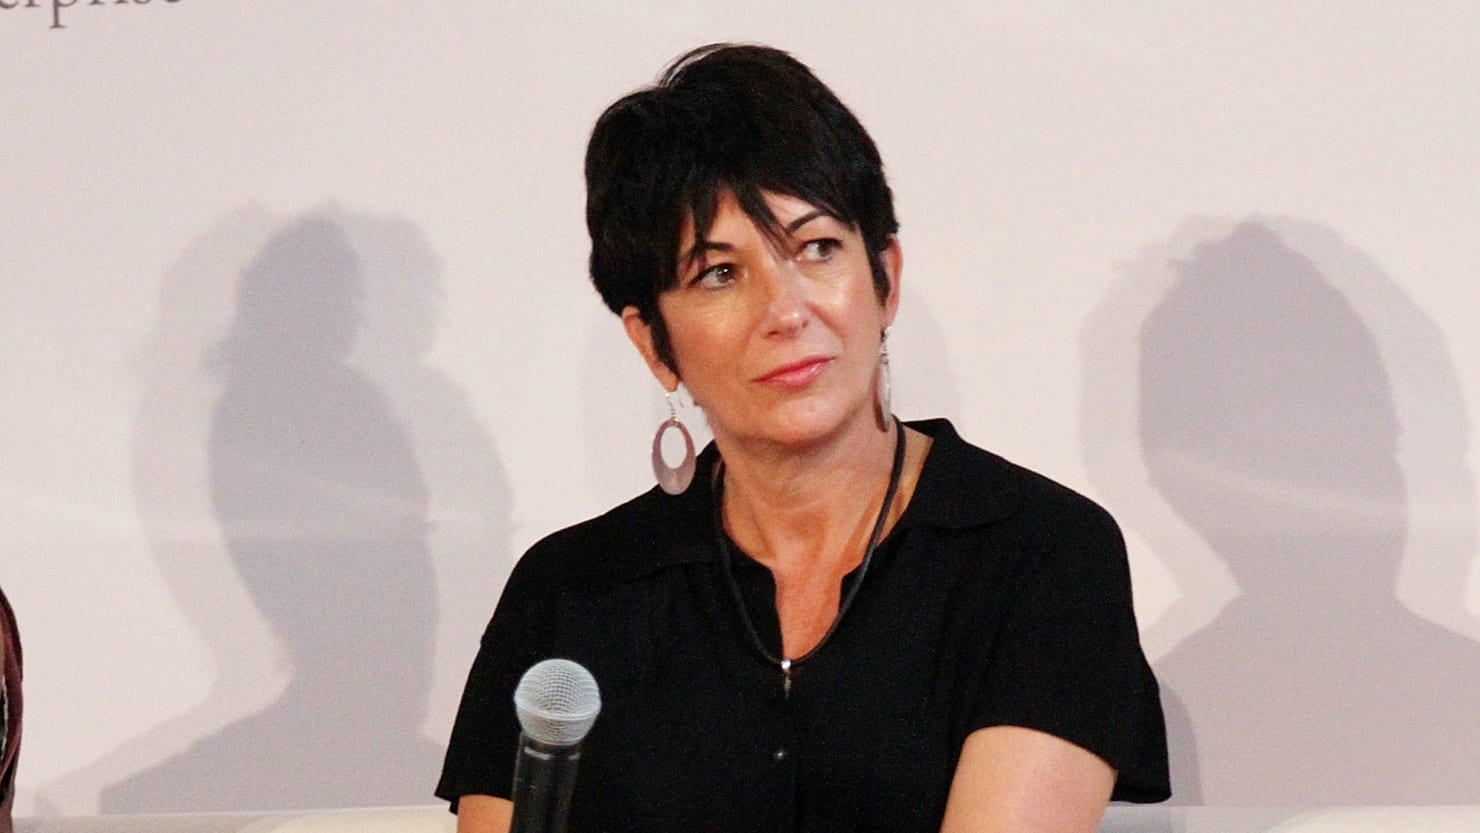 Ghislaine Maxwell's Private Emails Reportedly Hacked